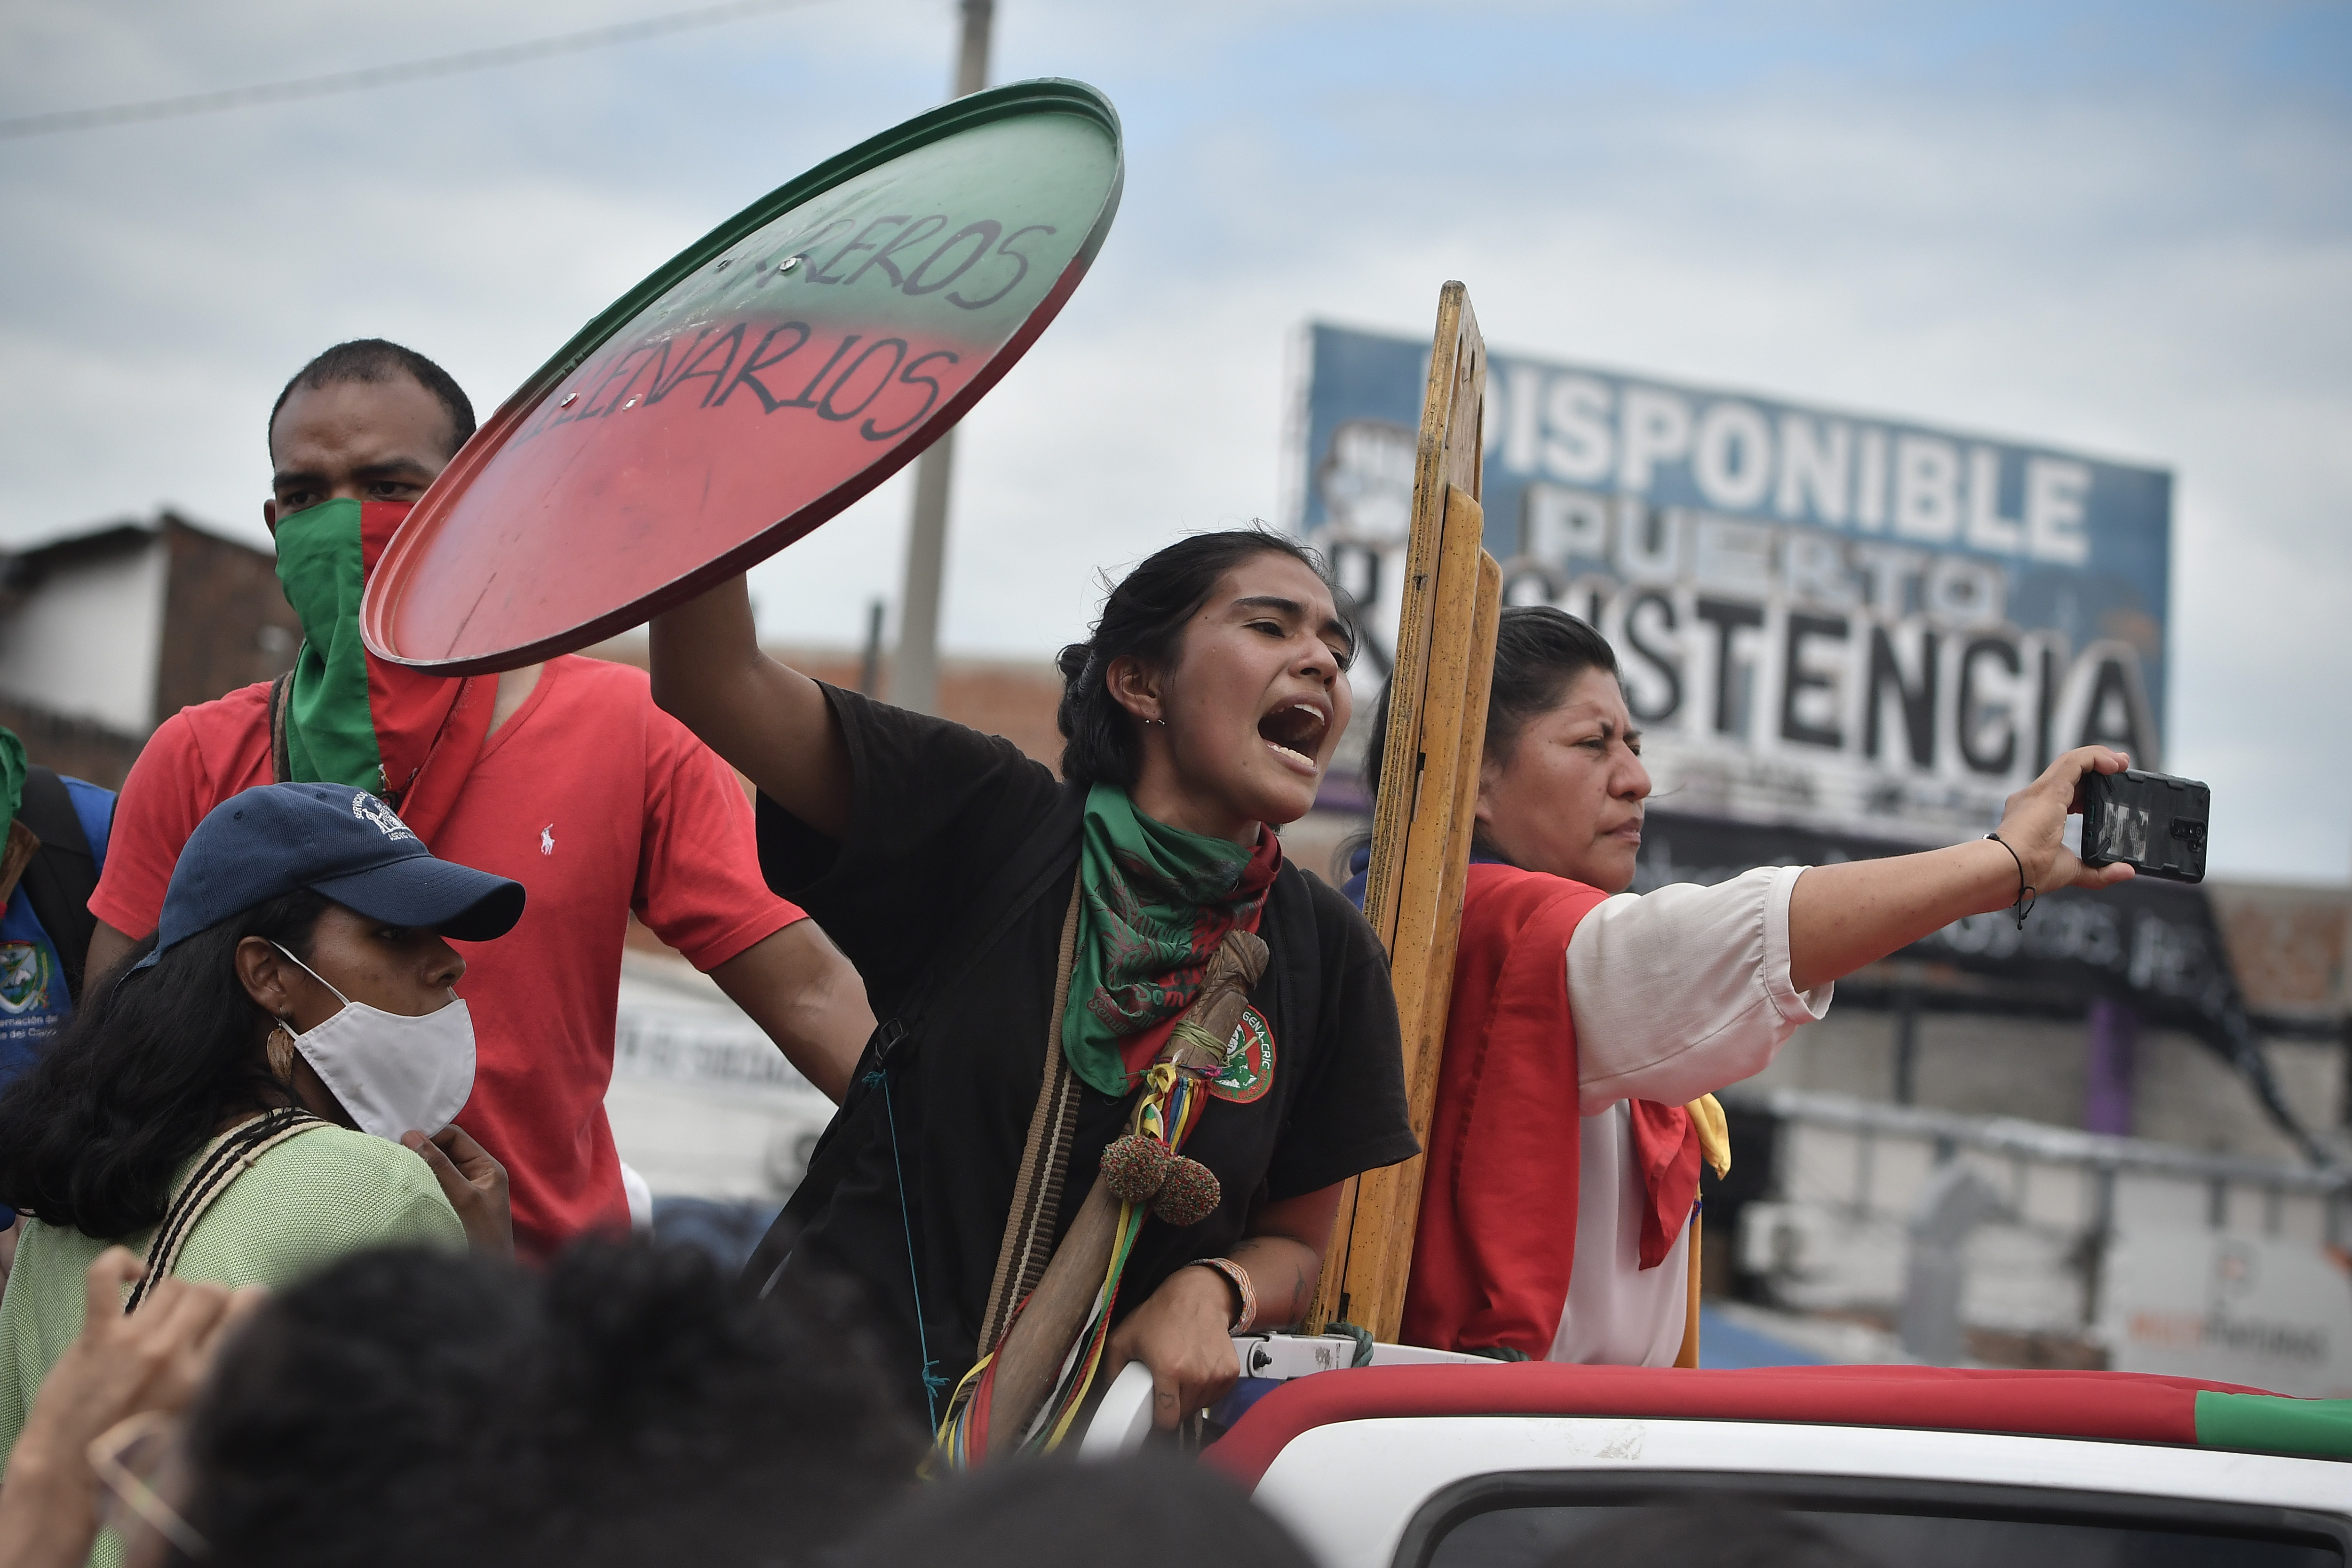 Protestors hold a makeshift shield and signs during a national strike against President Ivan Duque's administration in Cali, Colombia on May 12.